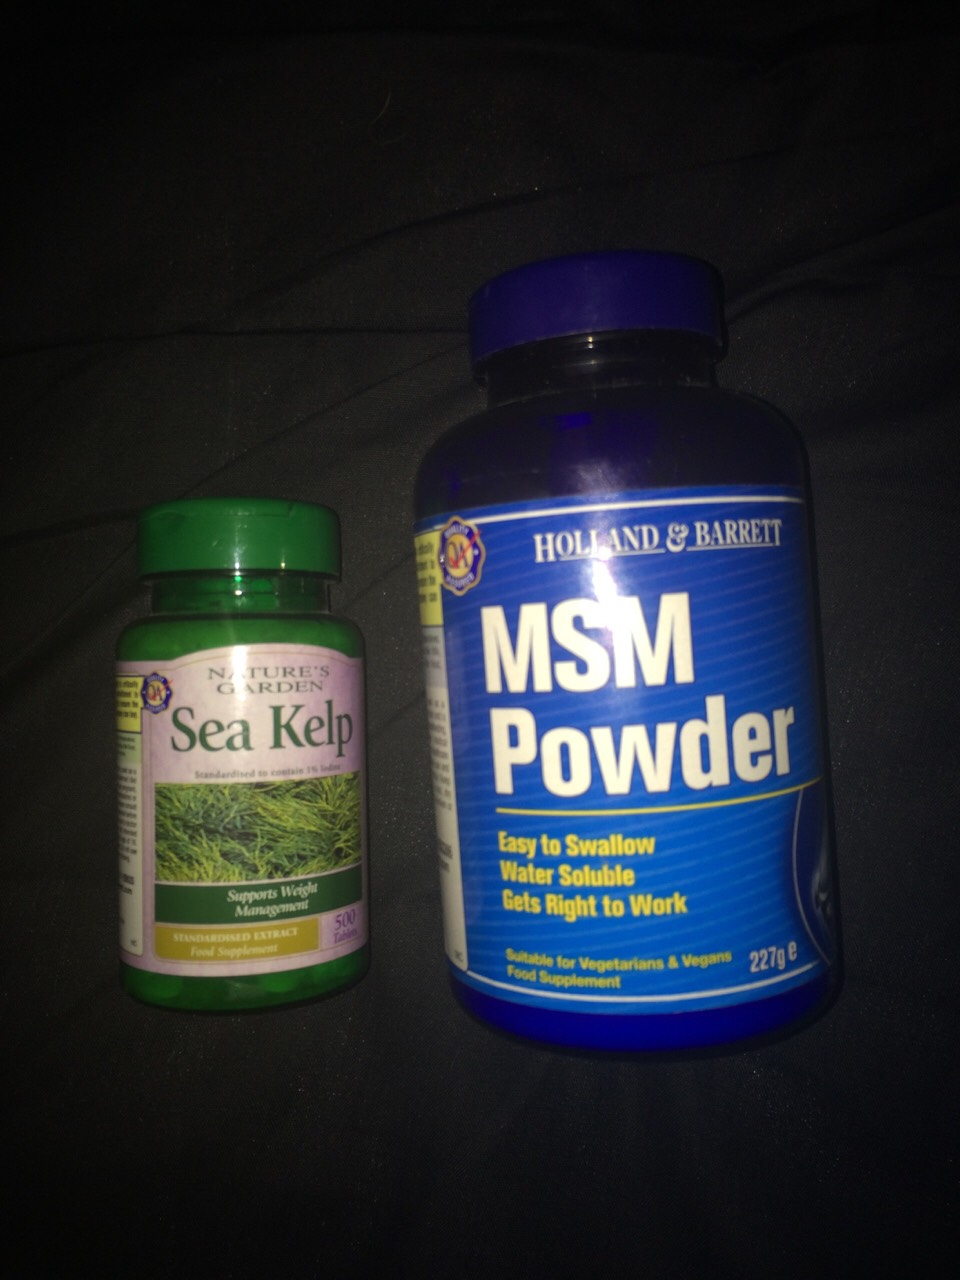 both of these products are from Holland and barret, I don't know how much they are because my dad got them me but if you take 3 sea kelp tablets and put a tea spoon of msm powder in a drink a day it's will start to grow back and you'll see the princess within a week.